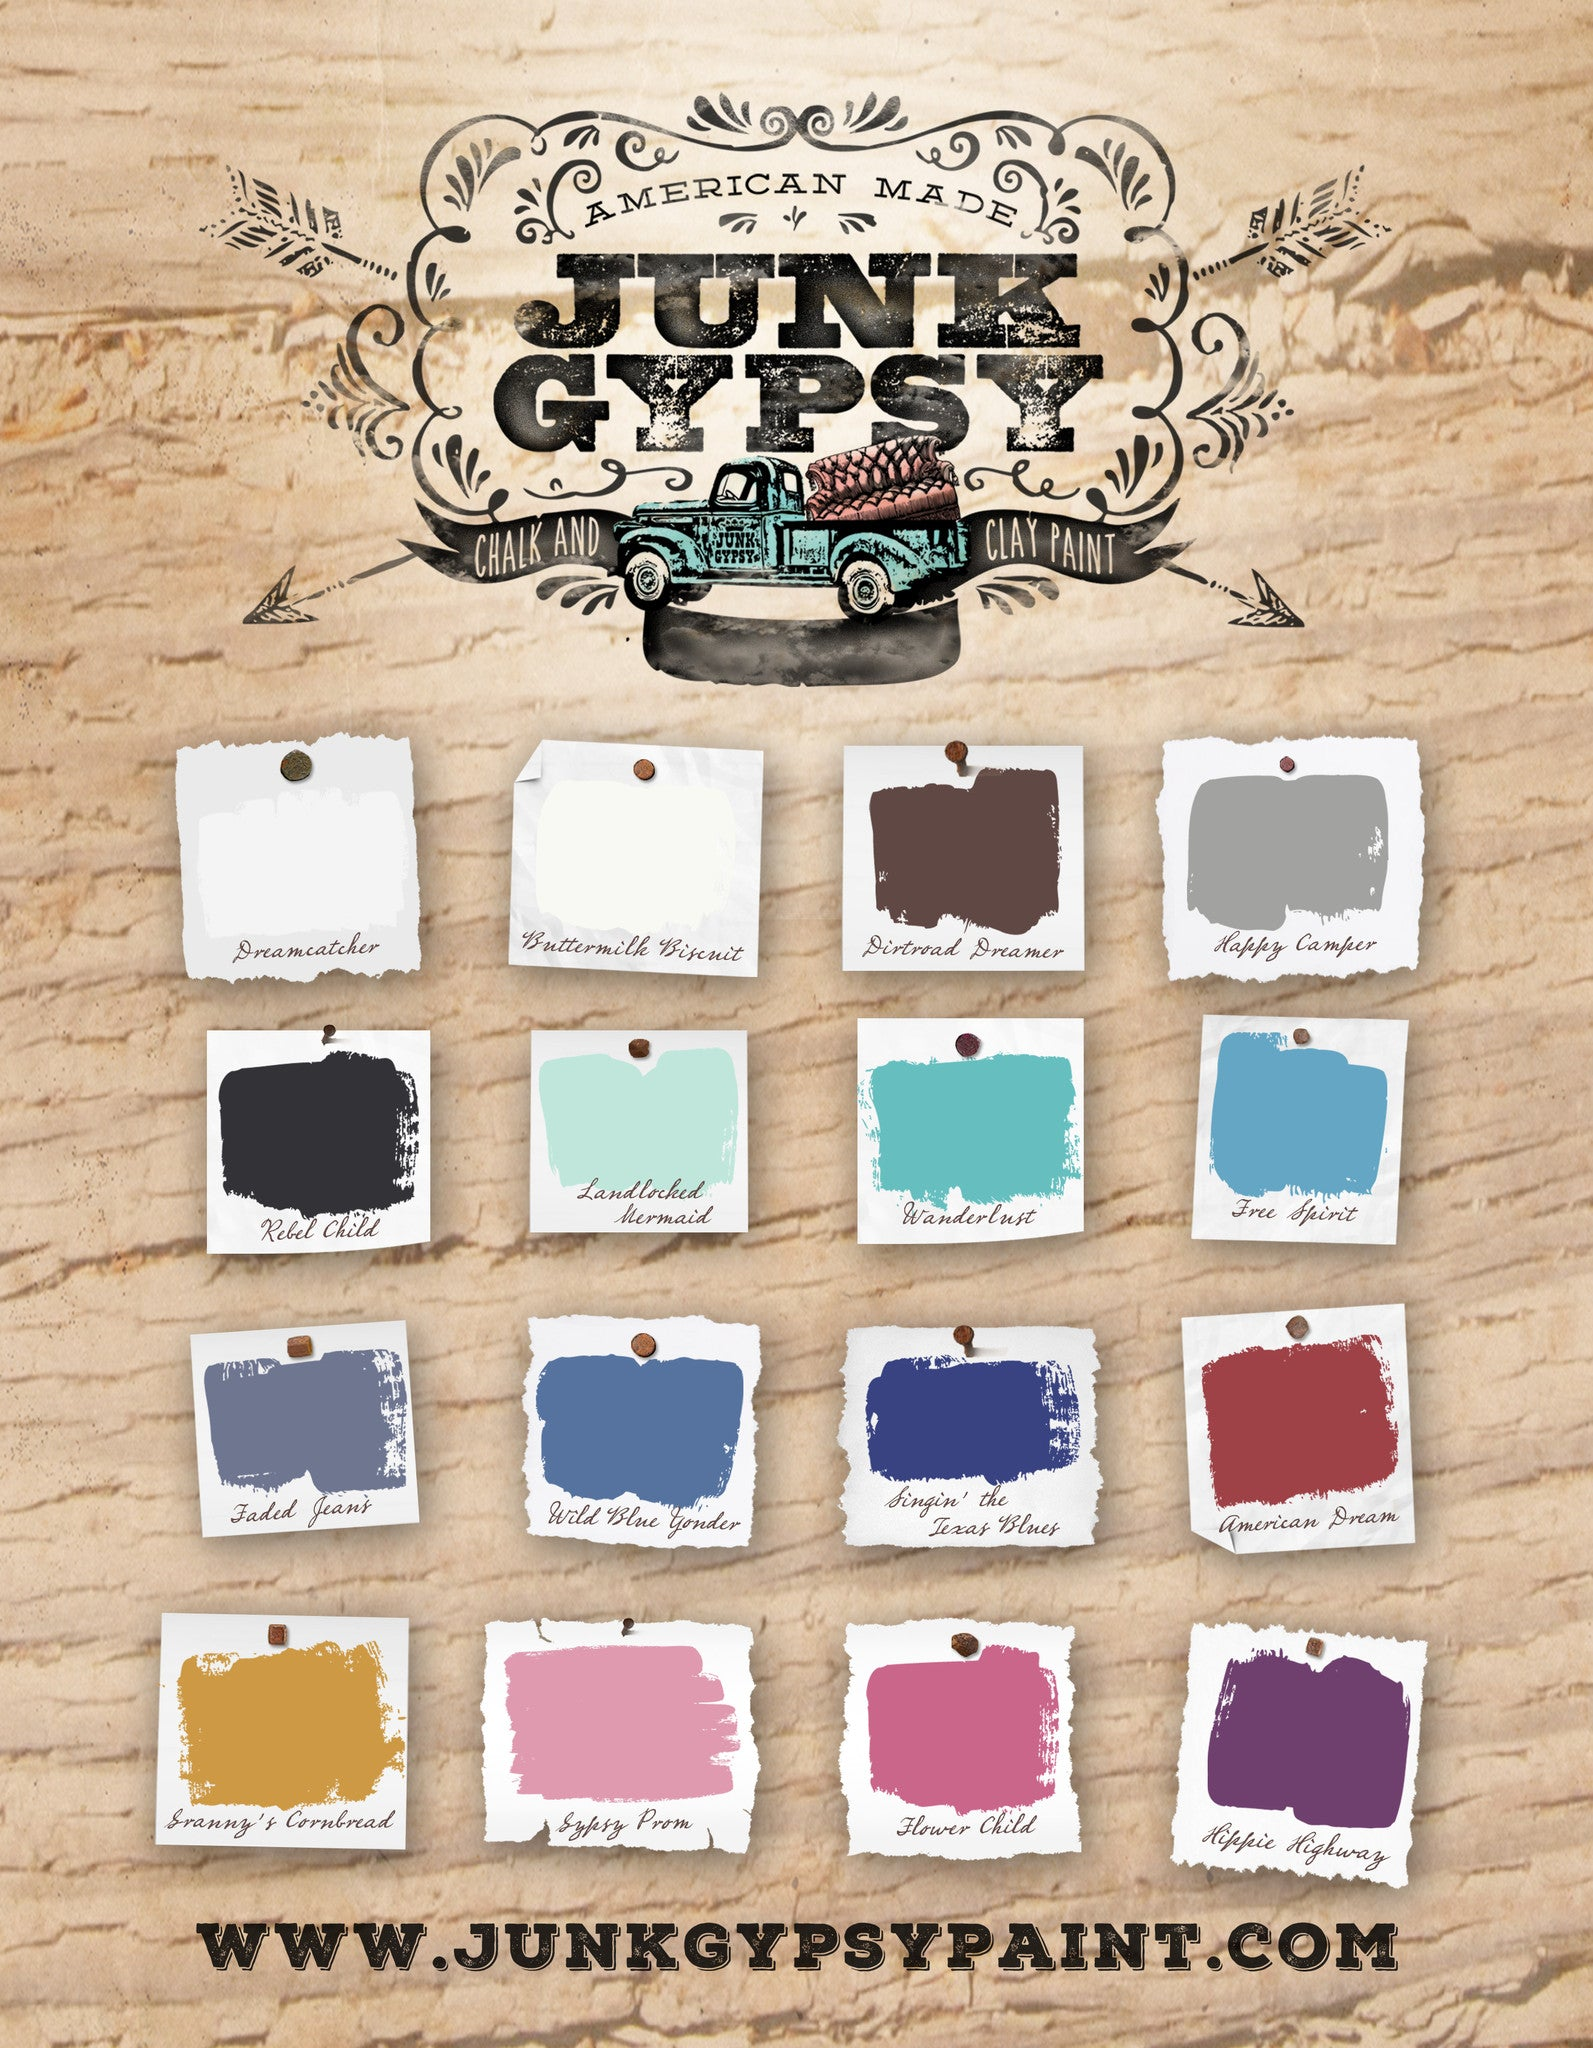 Junk Gypsy Paint - Singin the Texas Blues - 8oz - Chalk and Clay Paint